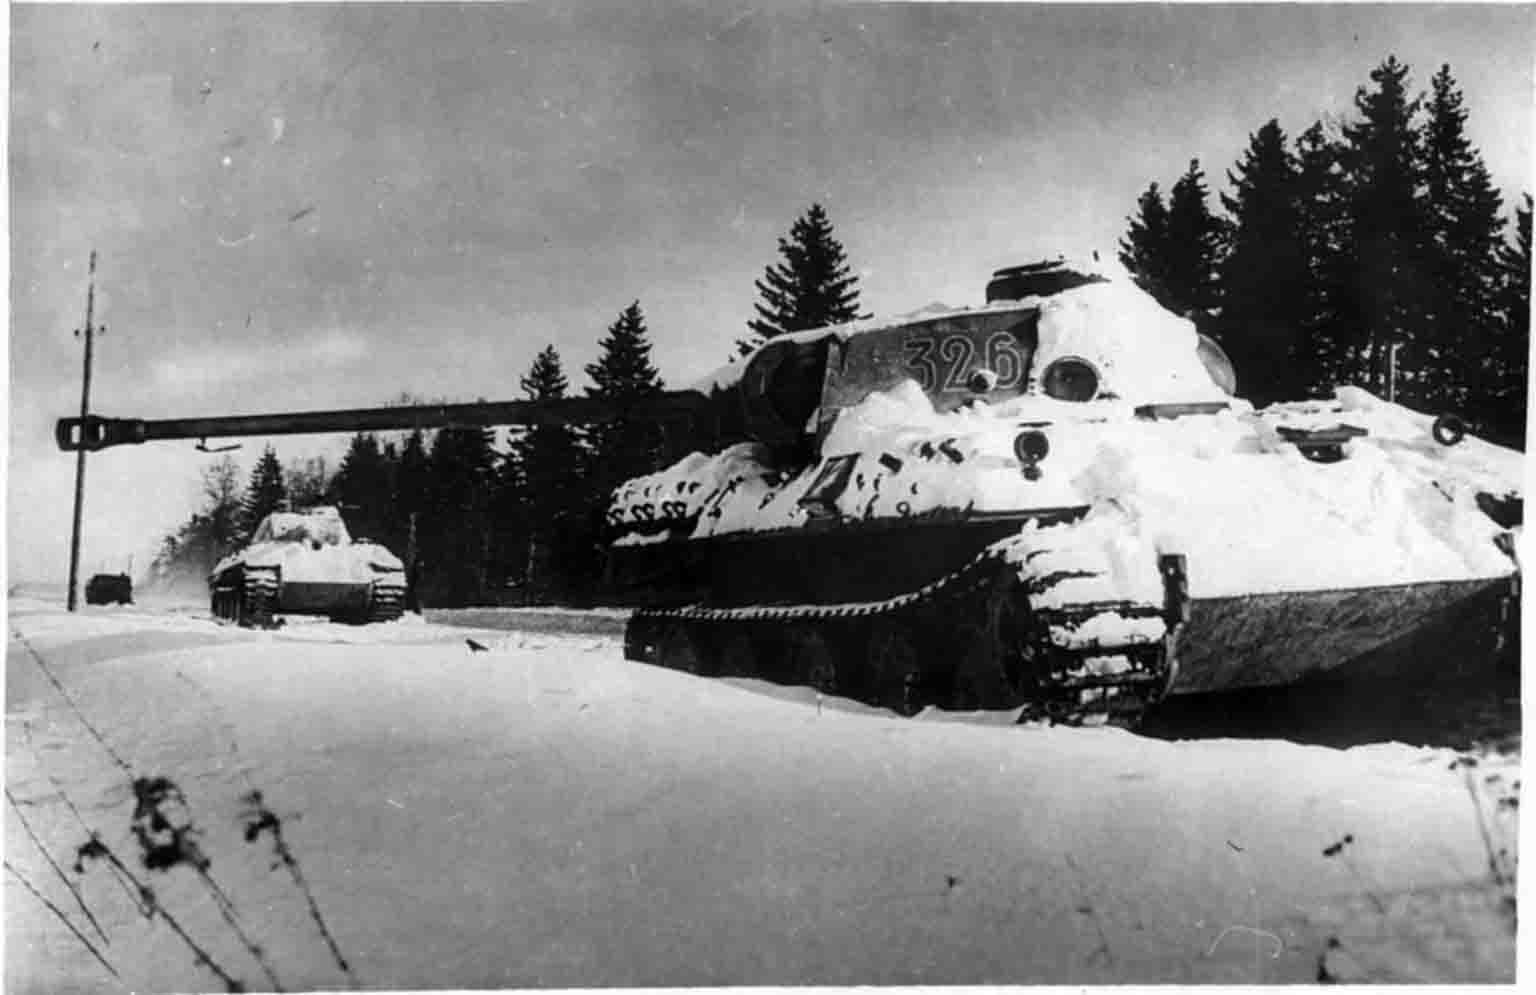 World War II: Panthers